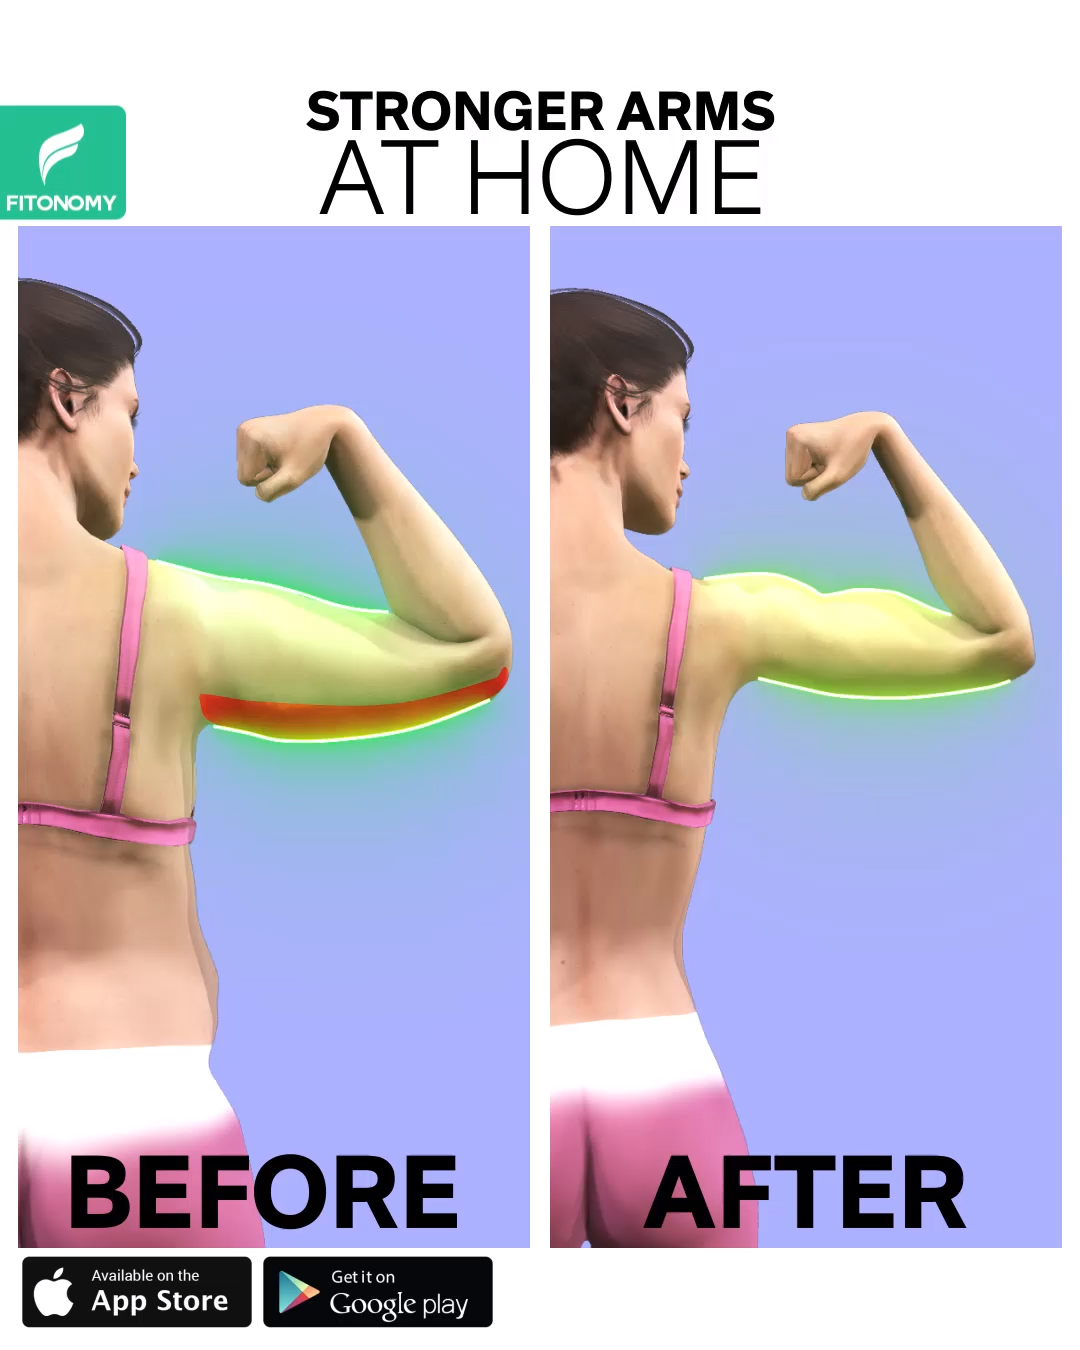 STRONGER ARMS